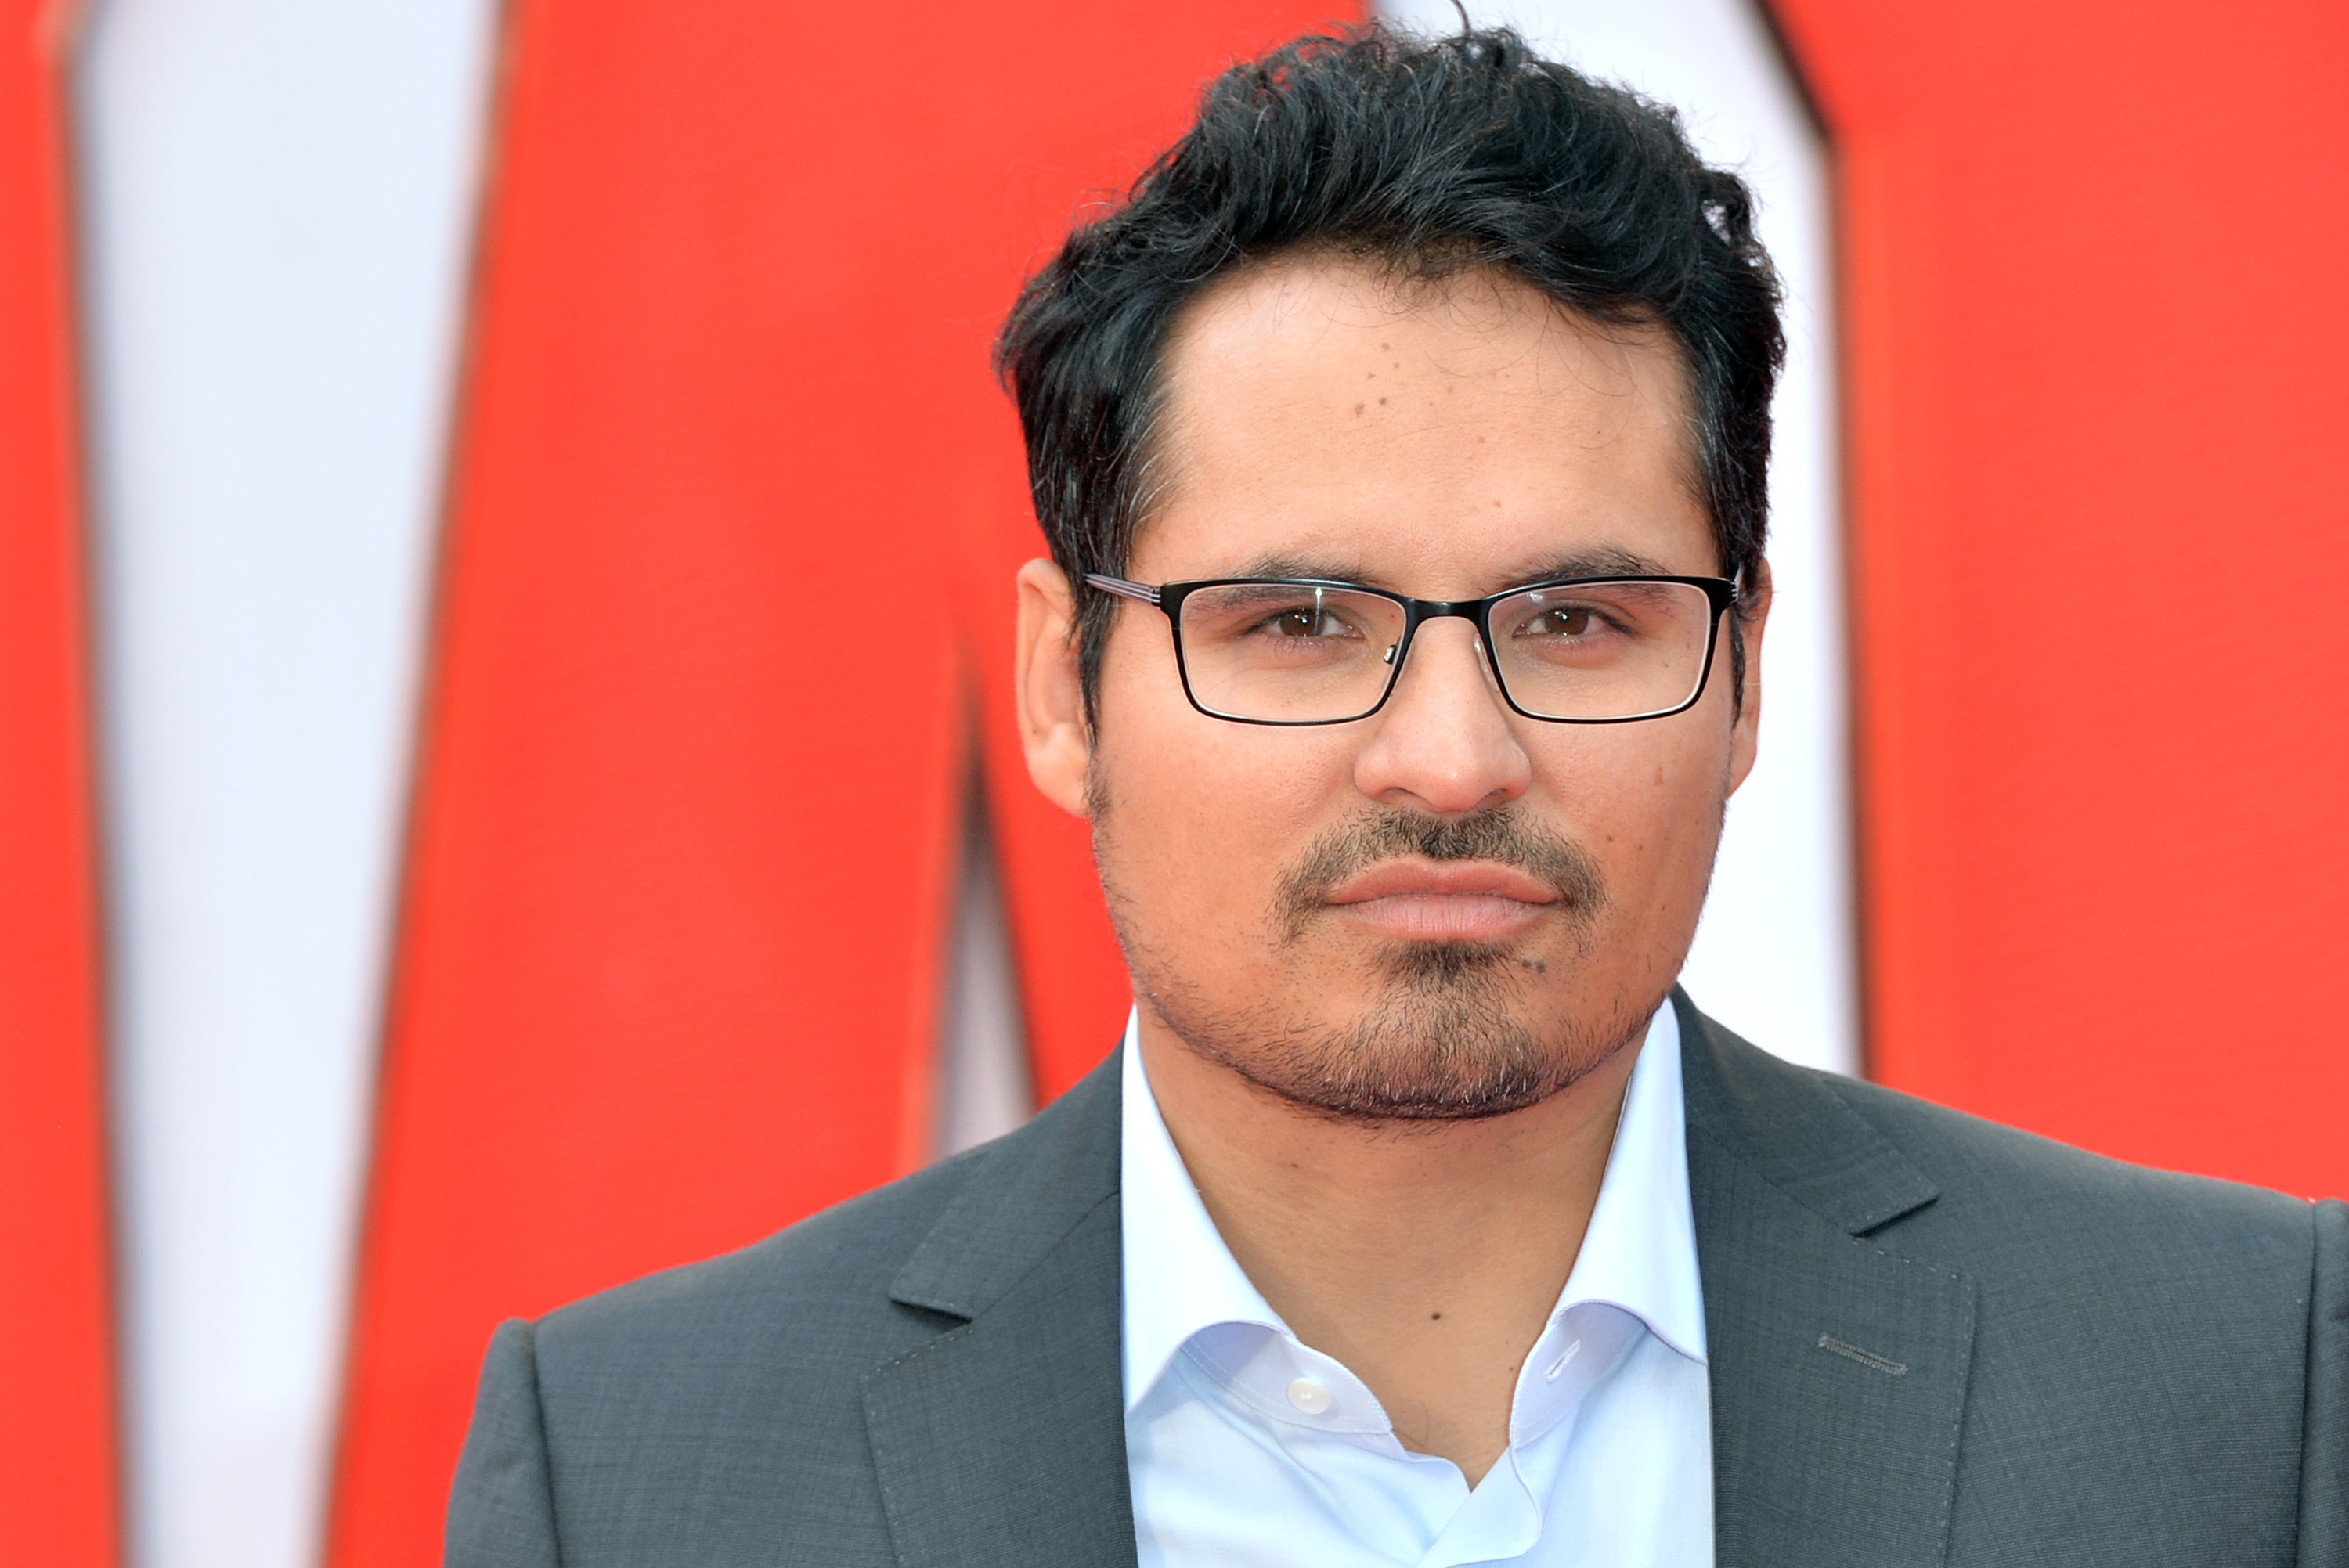 TRAILER: Michael Peña Plays a Shady Mr. Roarke in 'Fantasy Island' Reboot